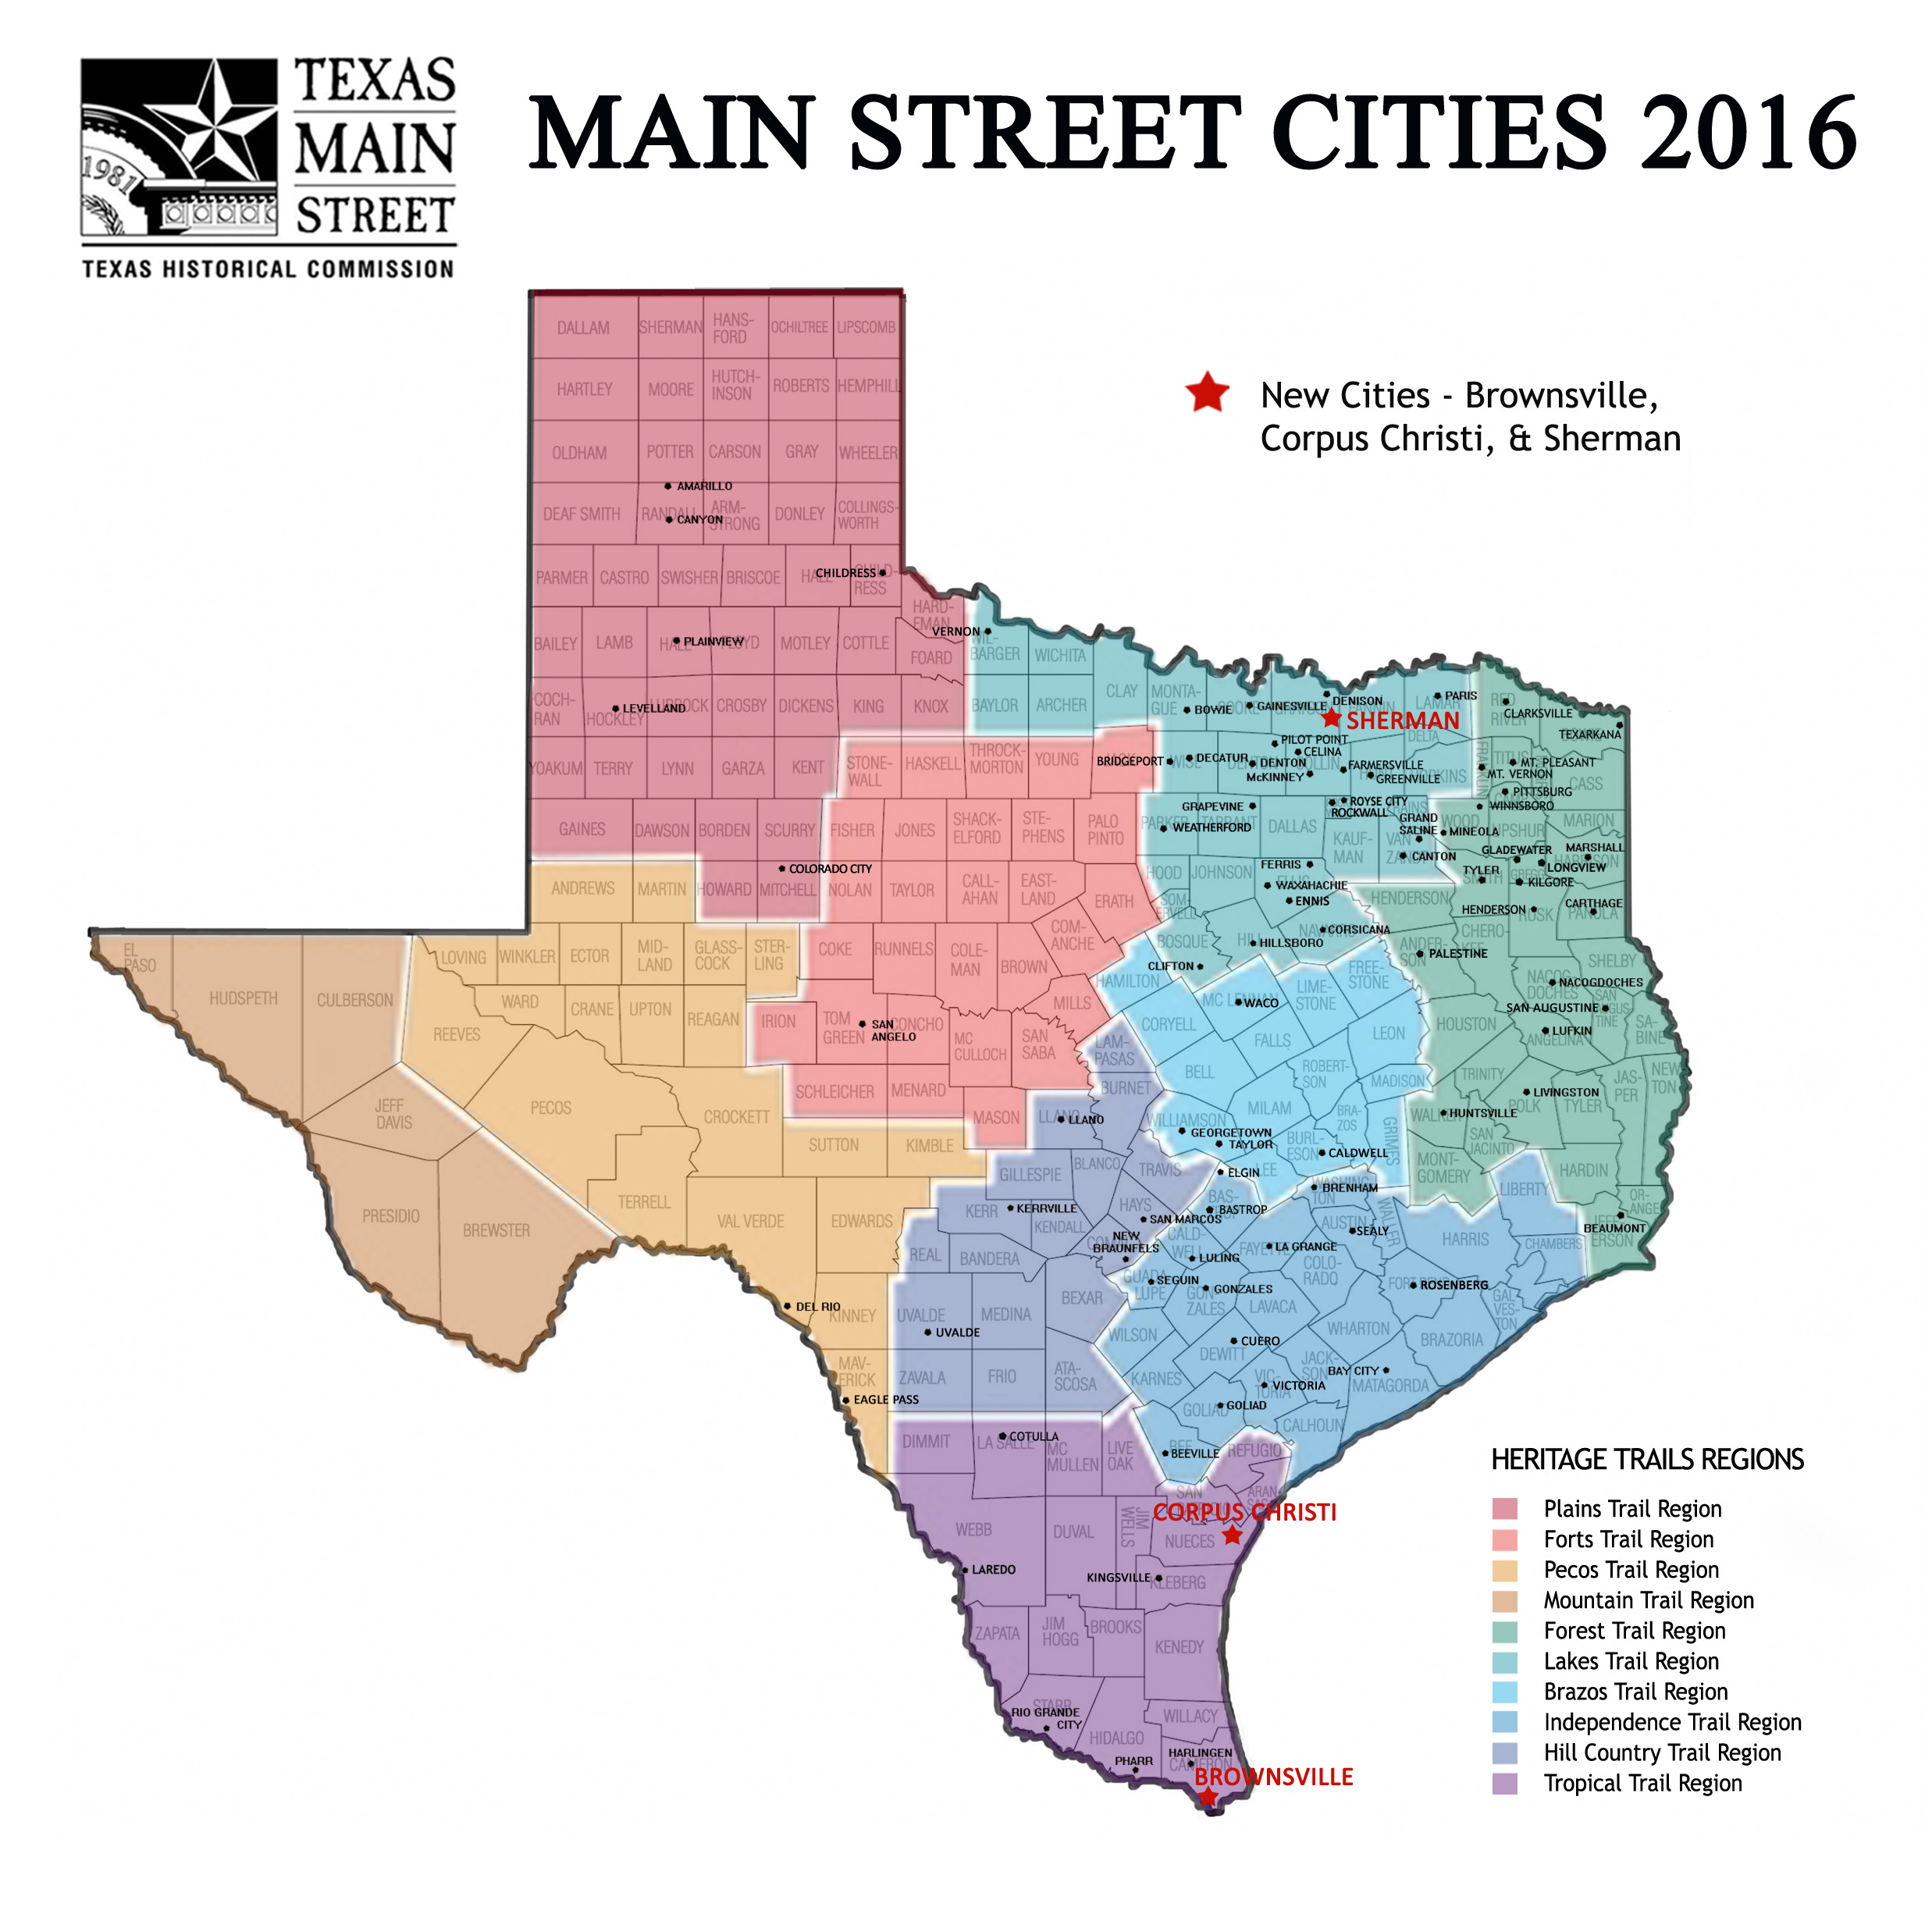 http://www.thc.state.tx.us/public/upload/MAP%20FOR%202016%20CITIES_2.jpg